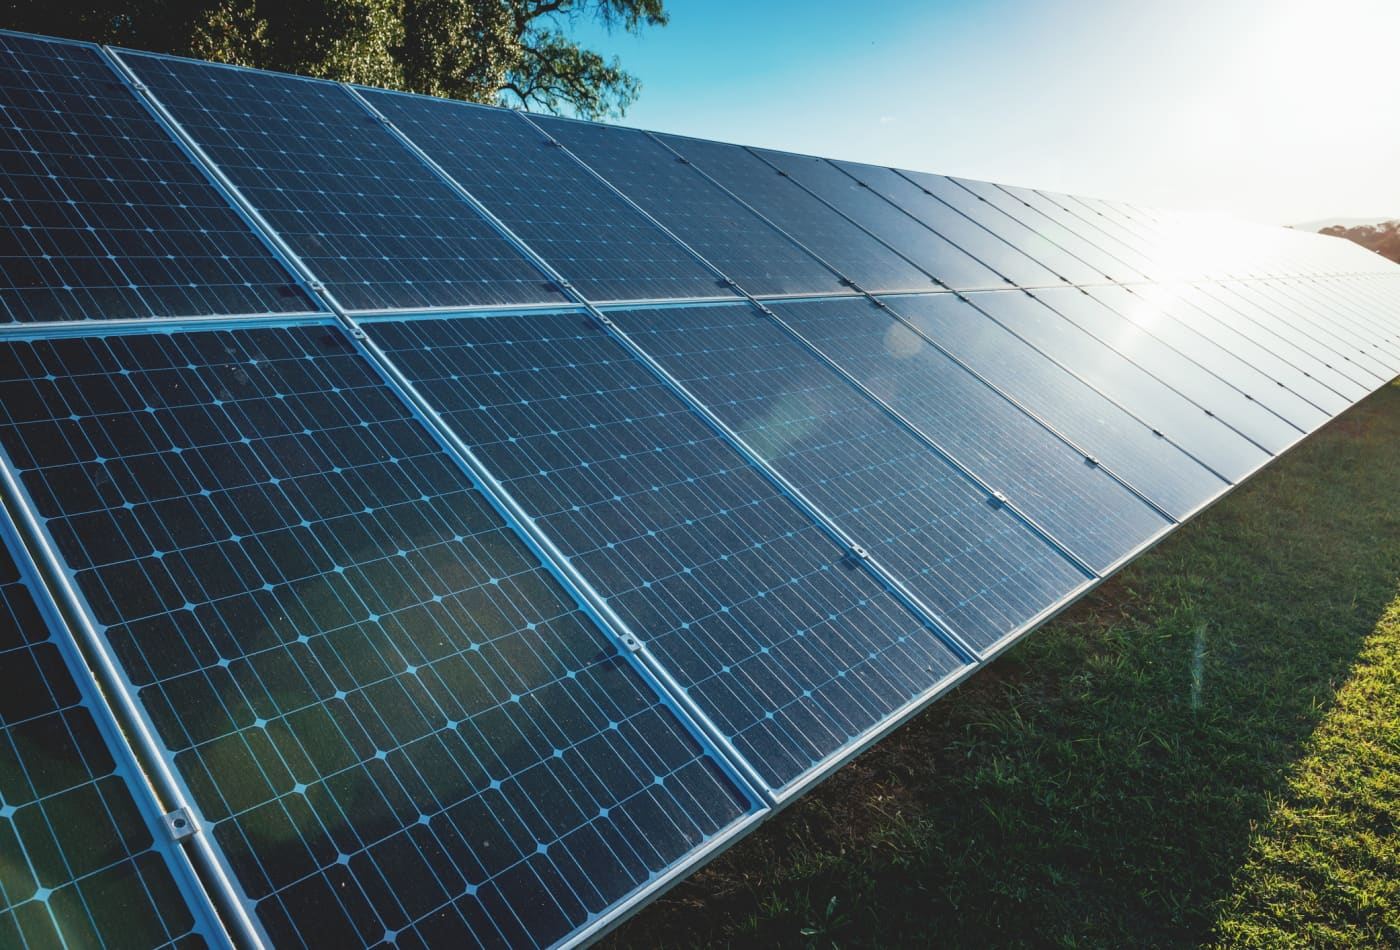 Farming and solar power set to combine in Netherlands-based pilot project